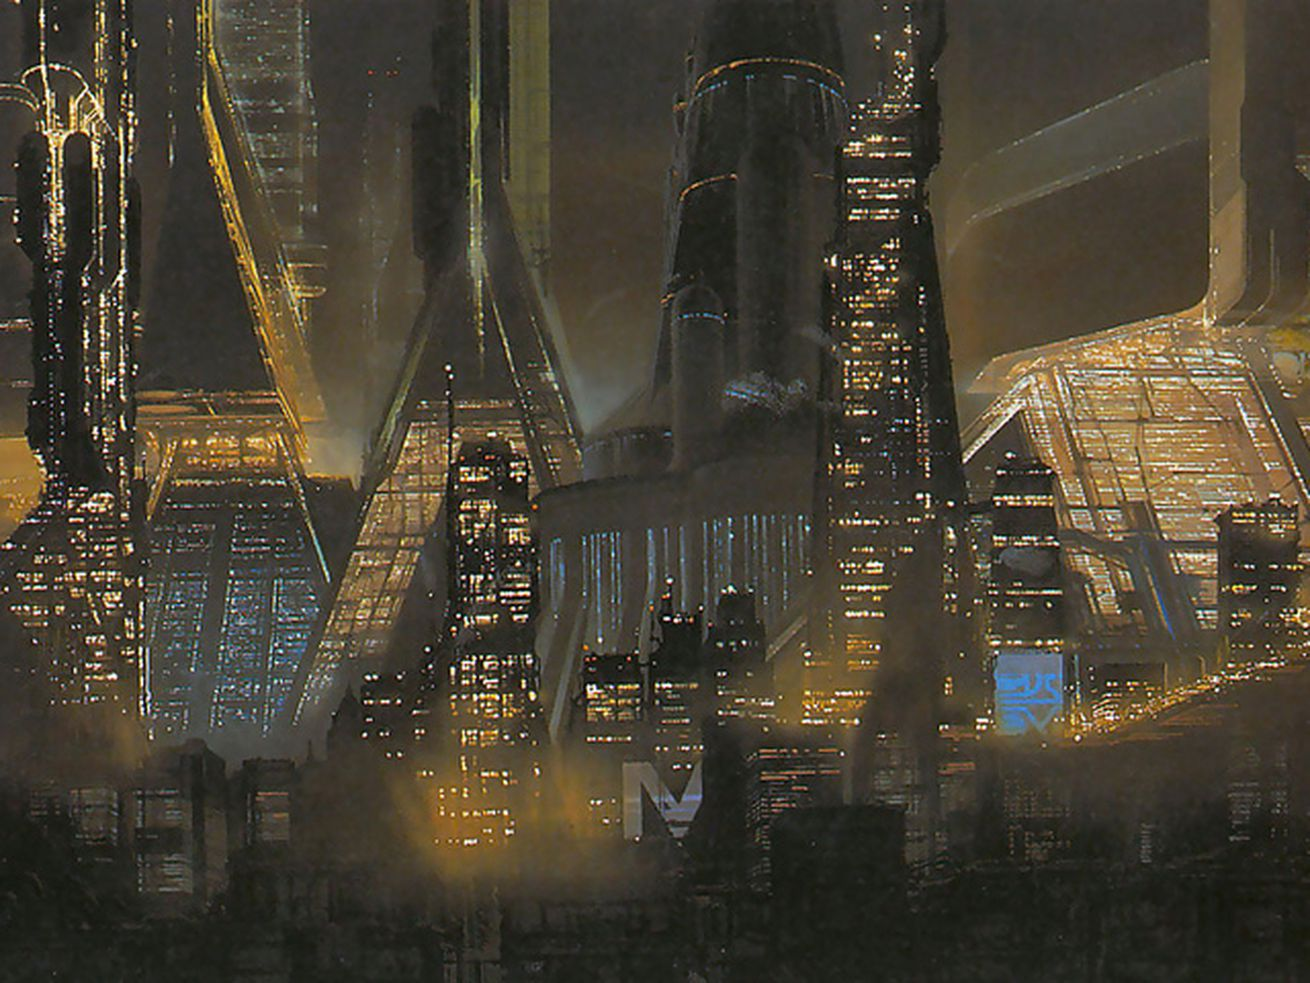 An illustration of a futuristic city with dark, pyramidal buildings.